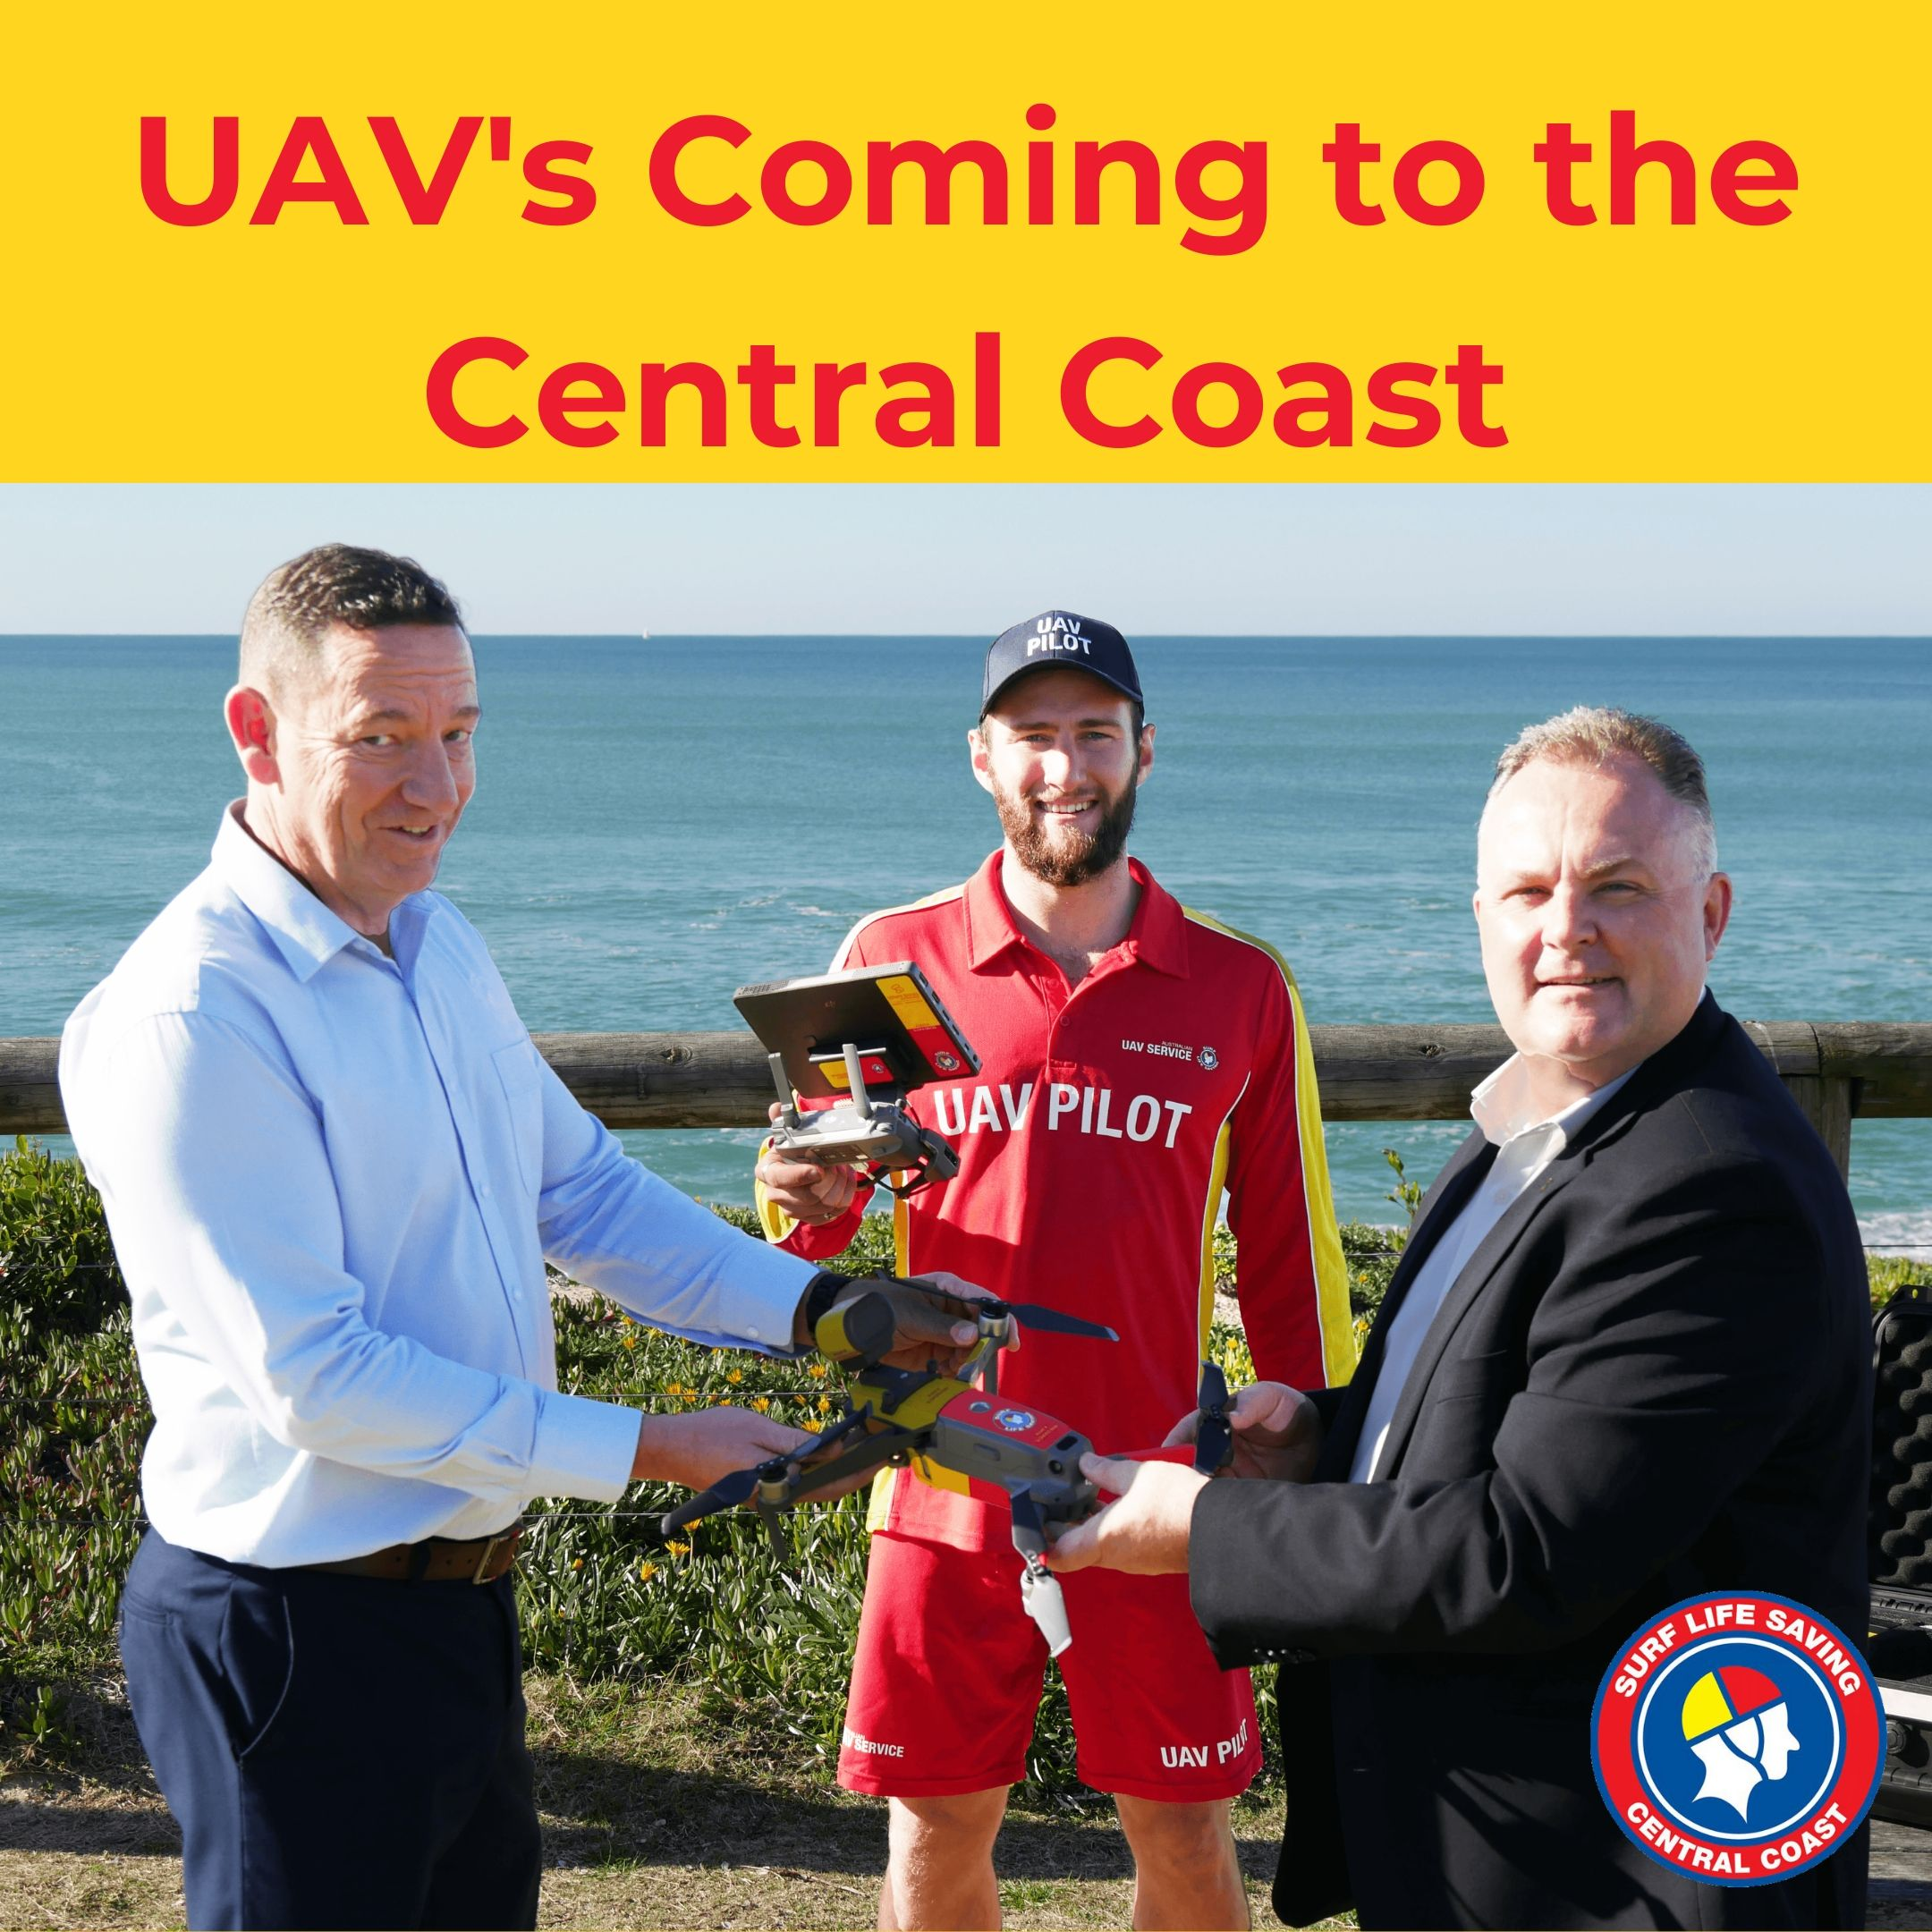 UAVs coming to the Central Coast